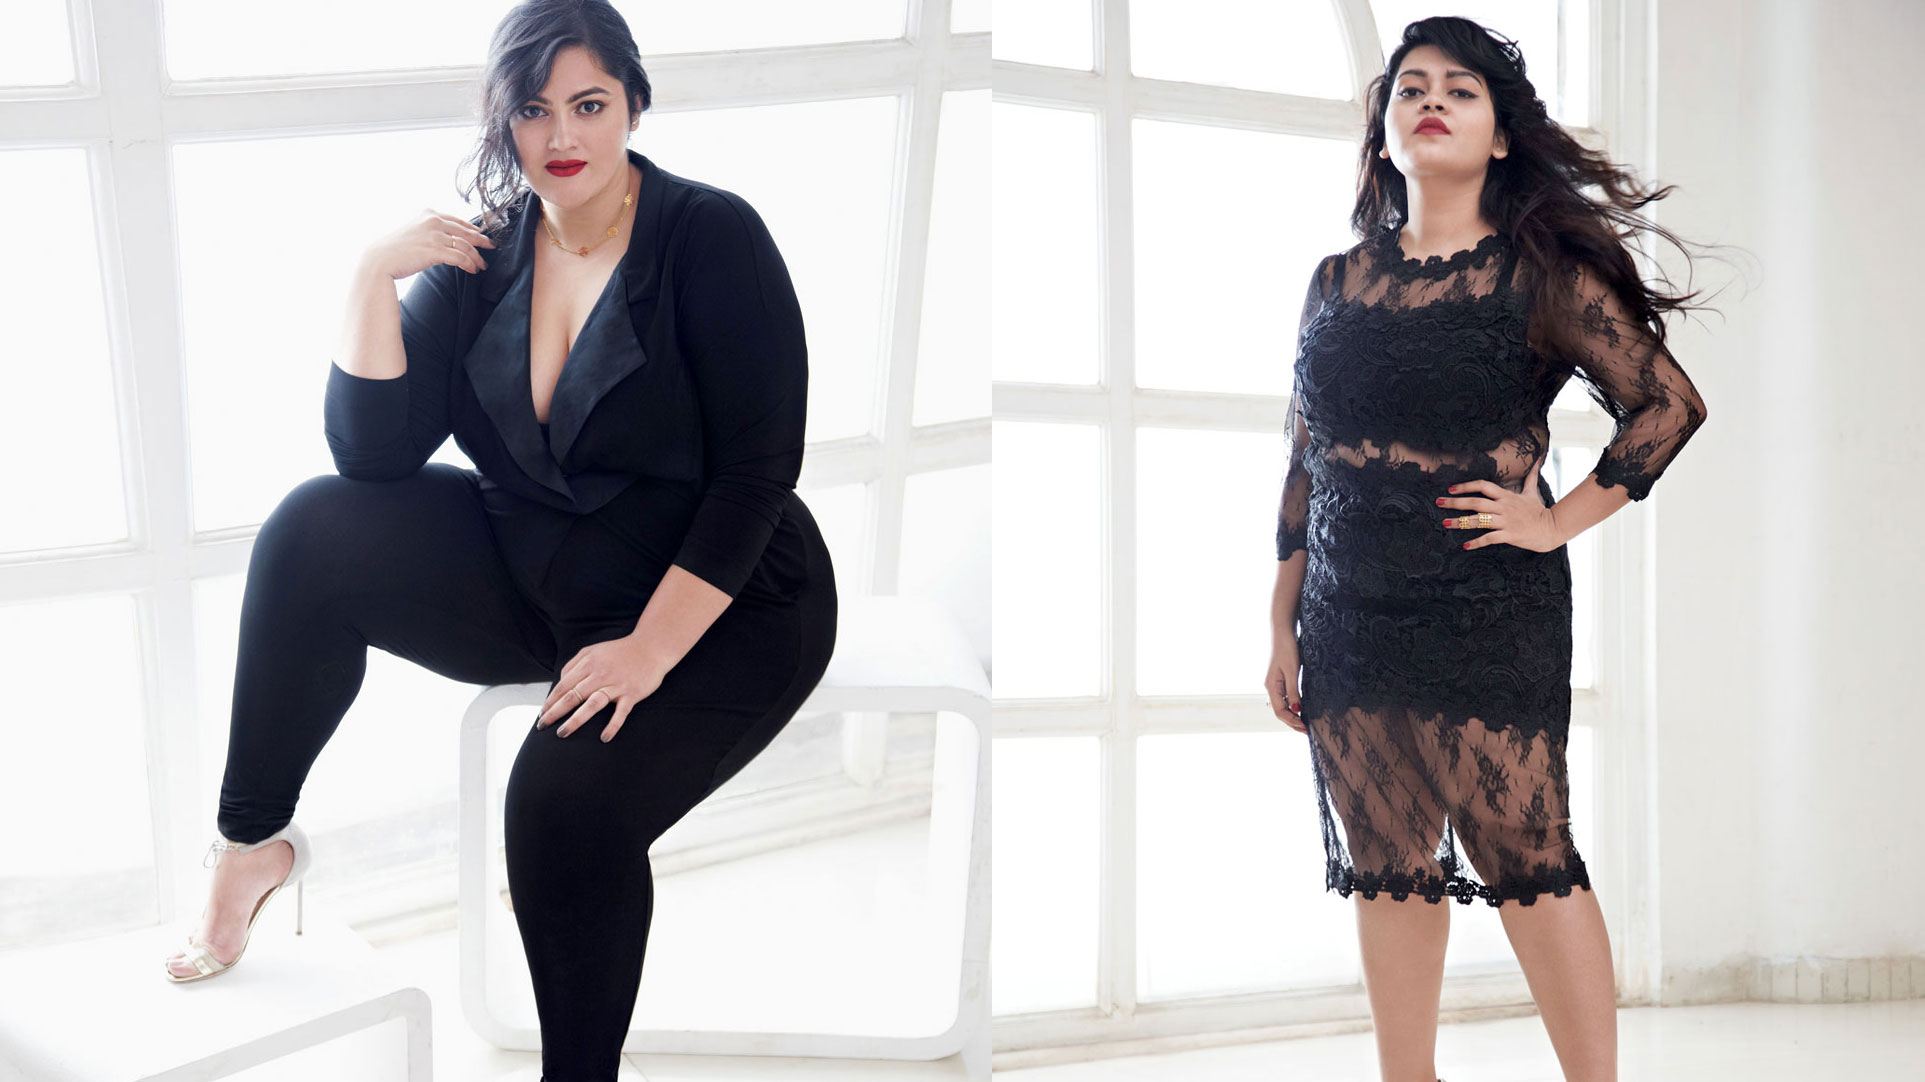 Website For Men Who Like Plus Size Women